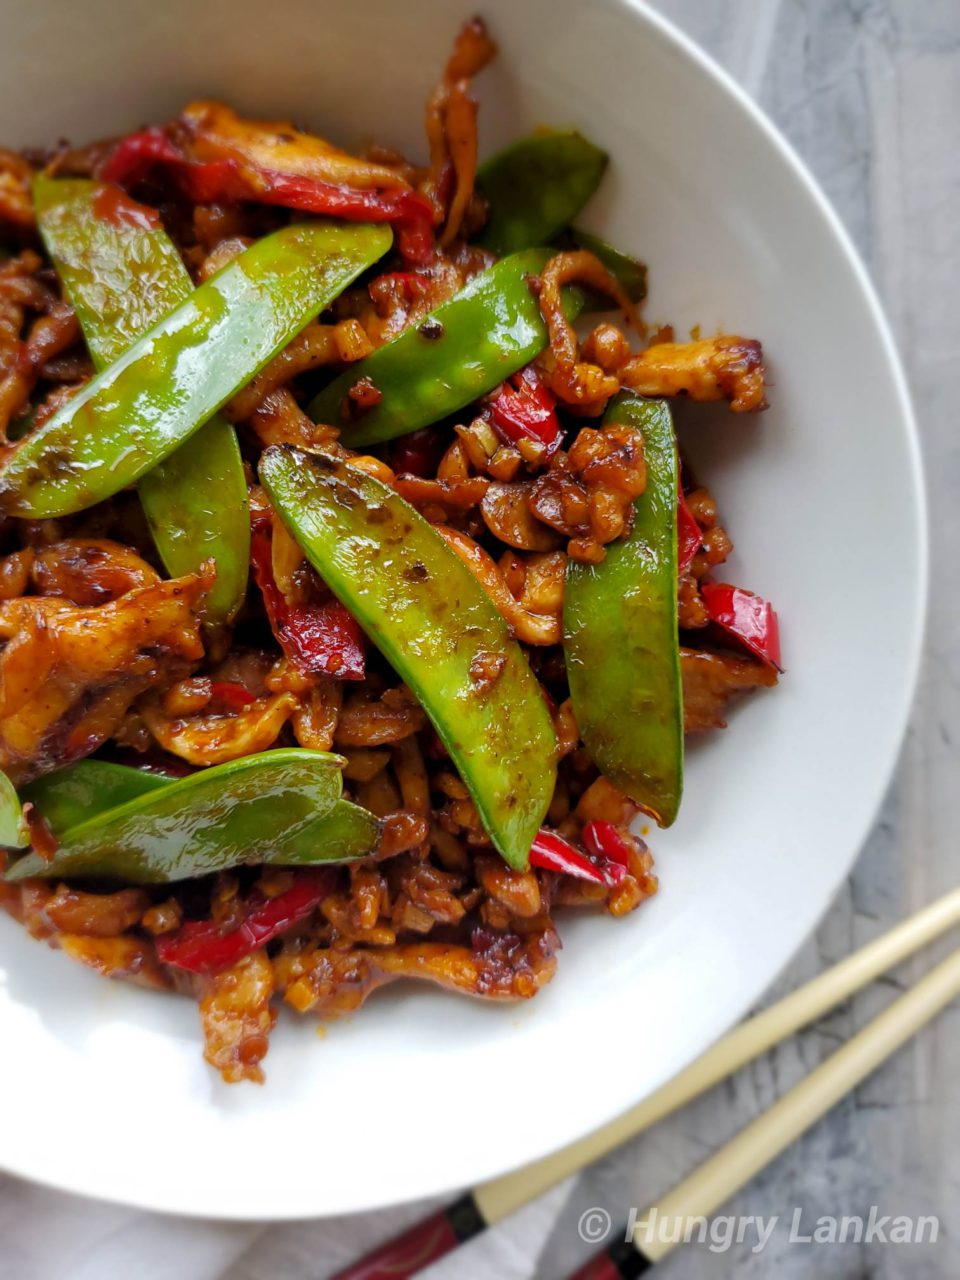 Schezwan Chicken with chili bean sauce